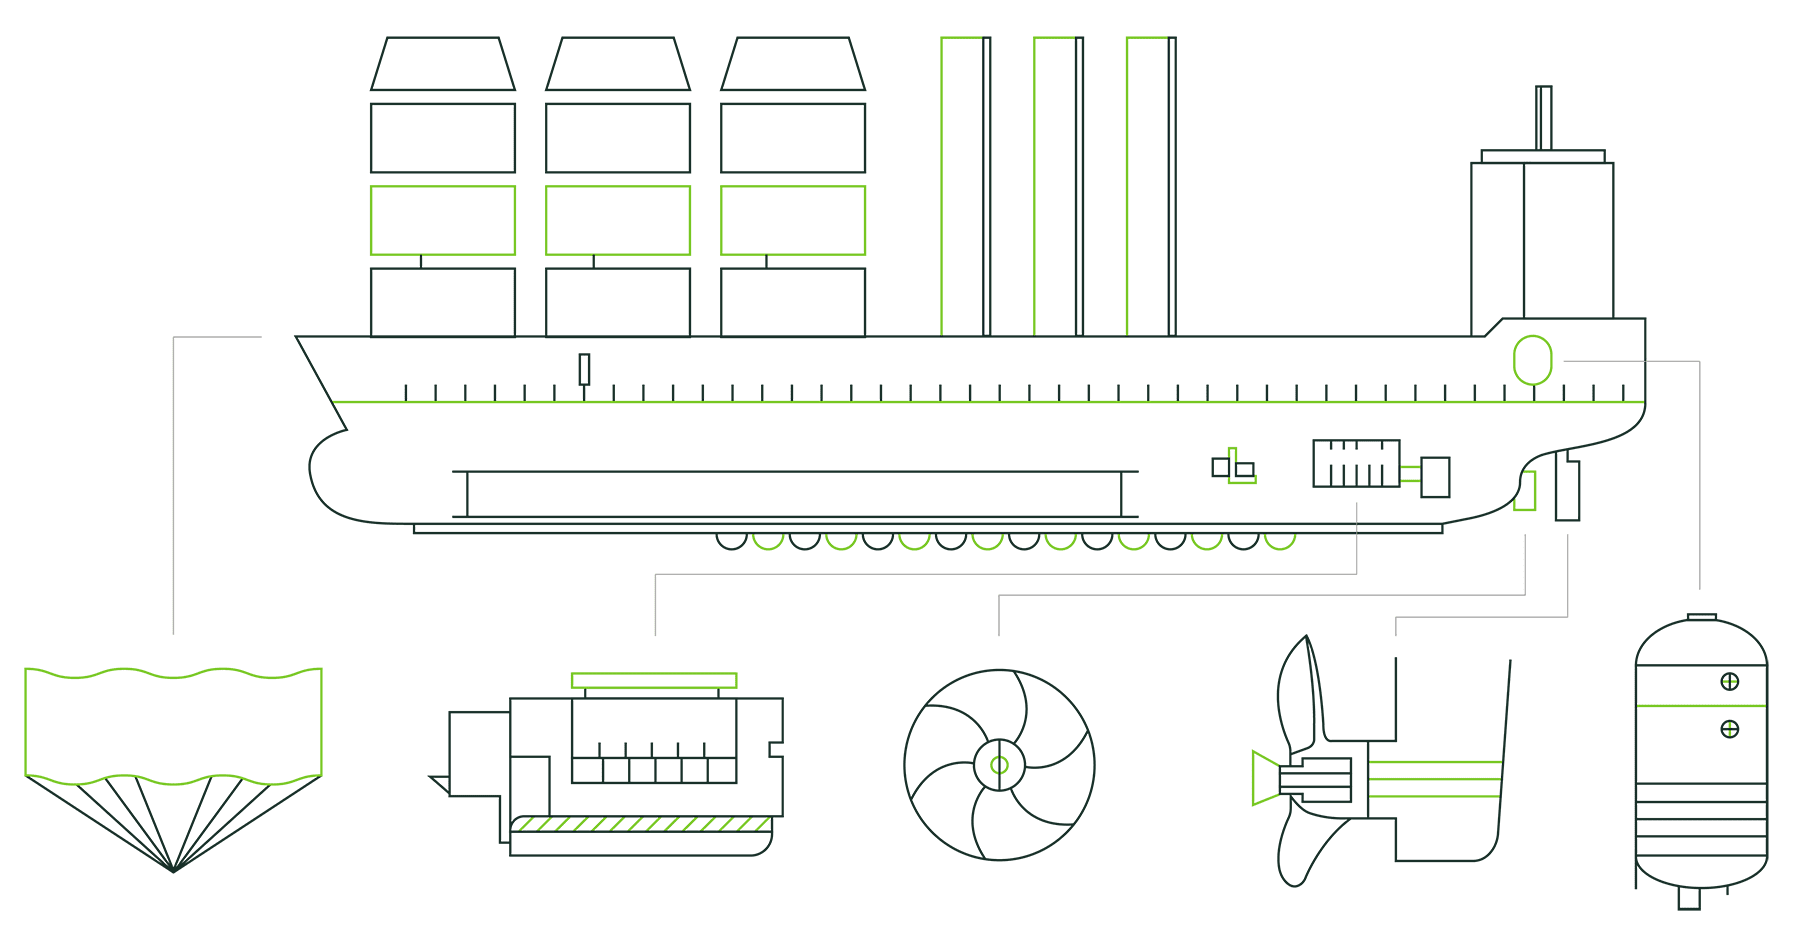 green ship diagram emerging technology without any text